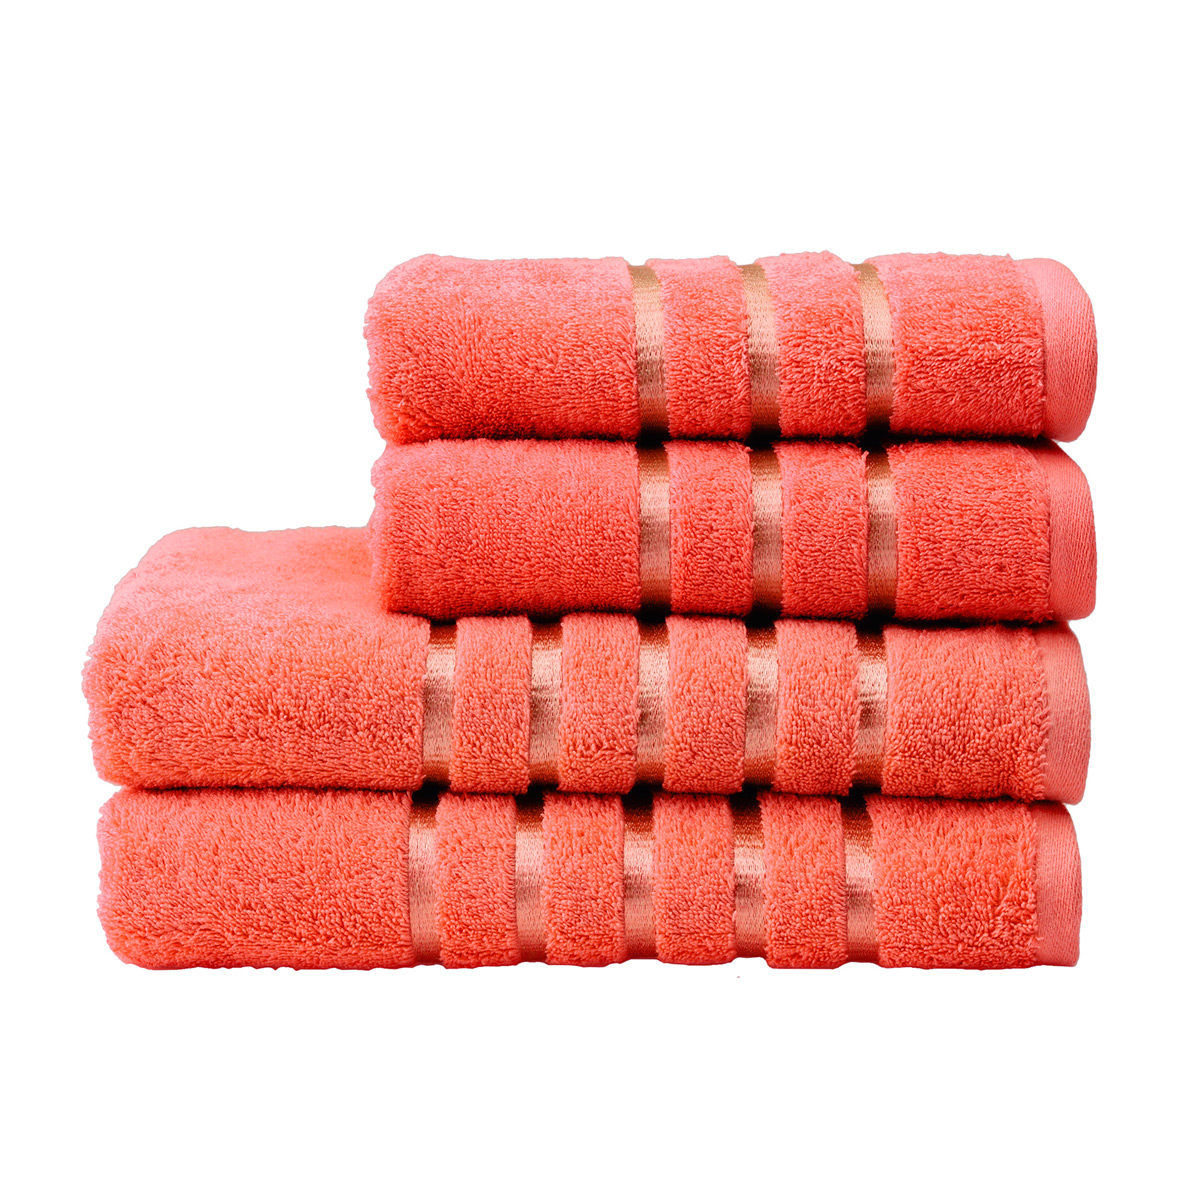 An image of Luxury Lifestyle Kingsley Face Cloth in Coral (Pink) by Christy